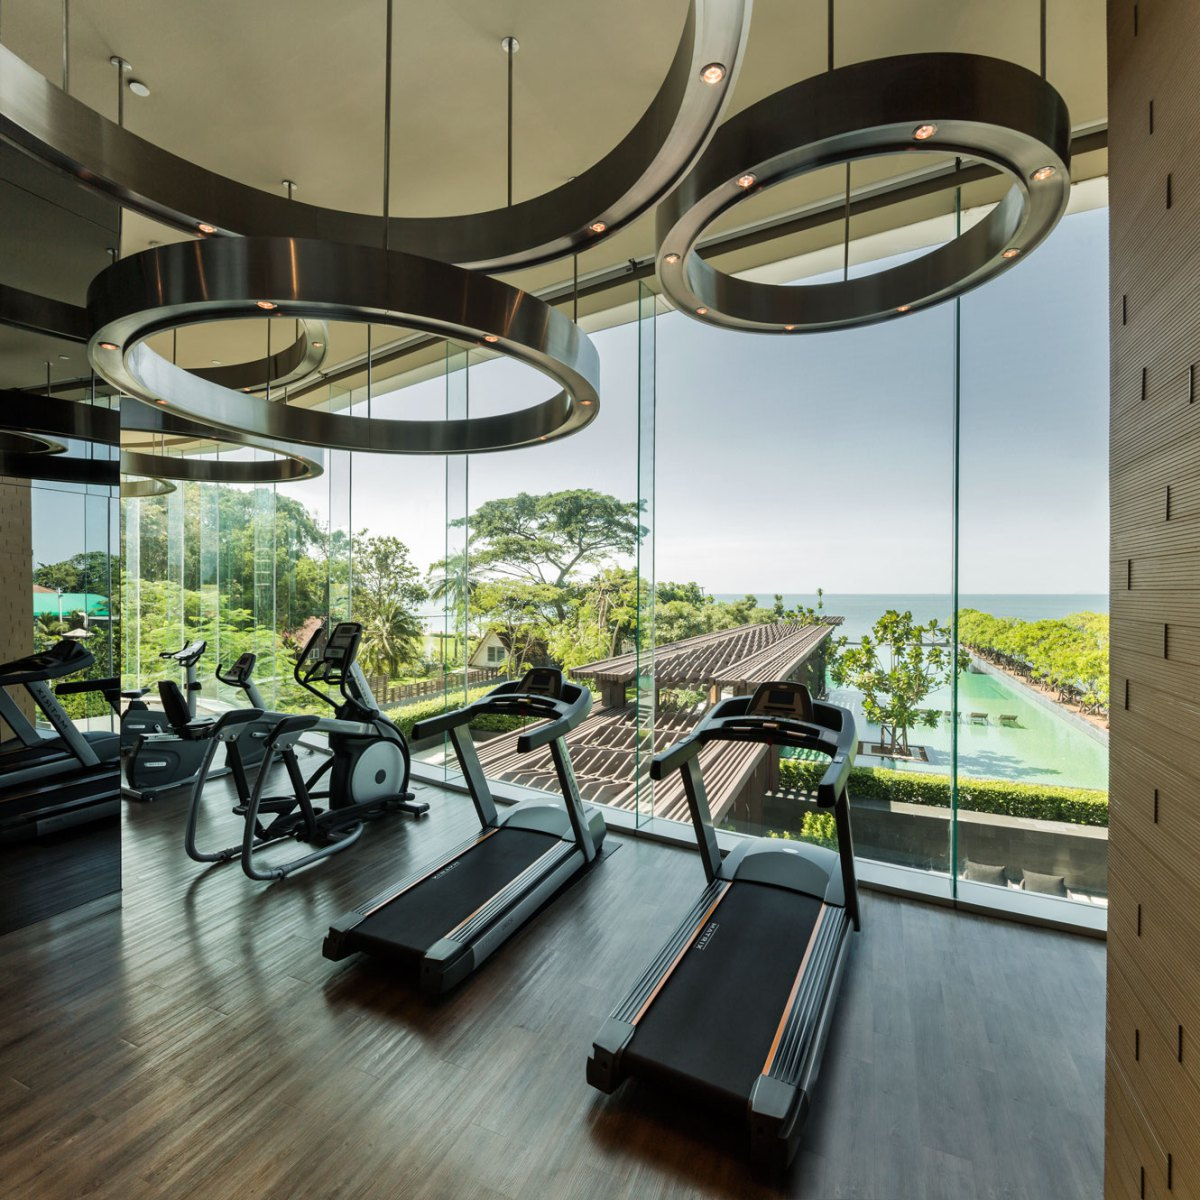 20 Ultra Modern Sleek Gym Design Collection To Get Inspired on New Get Design  id=58783